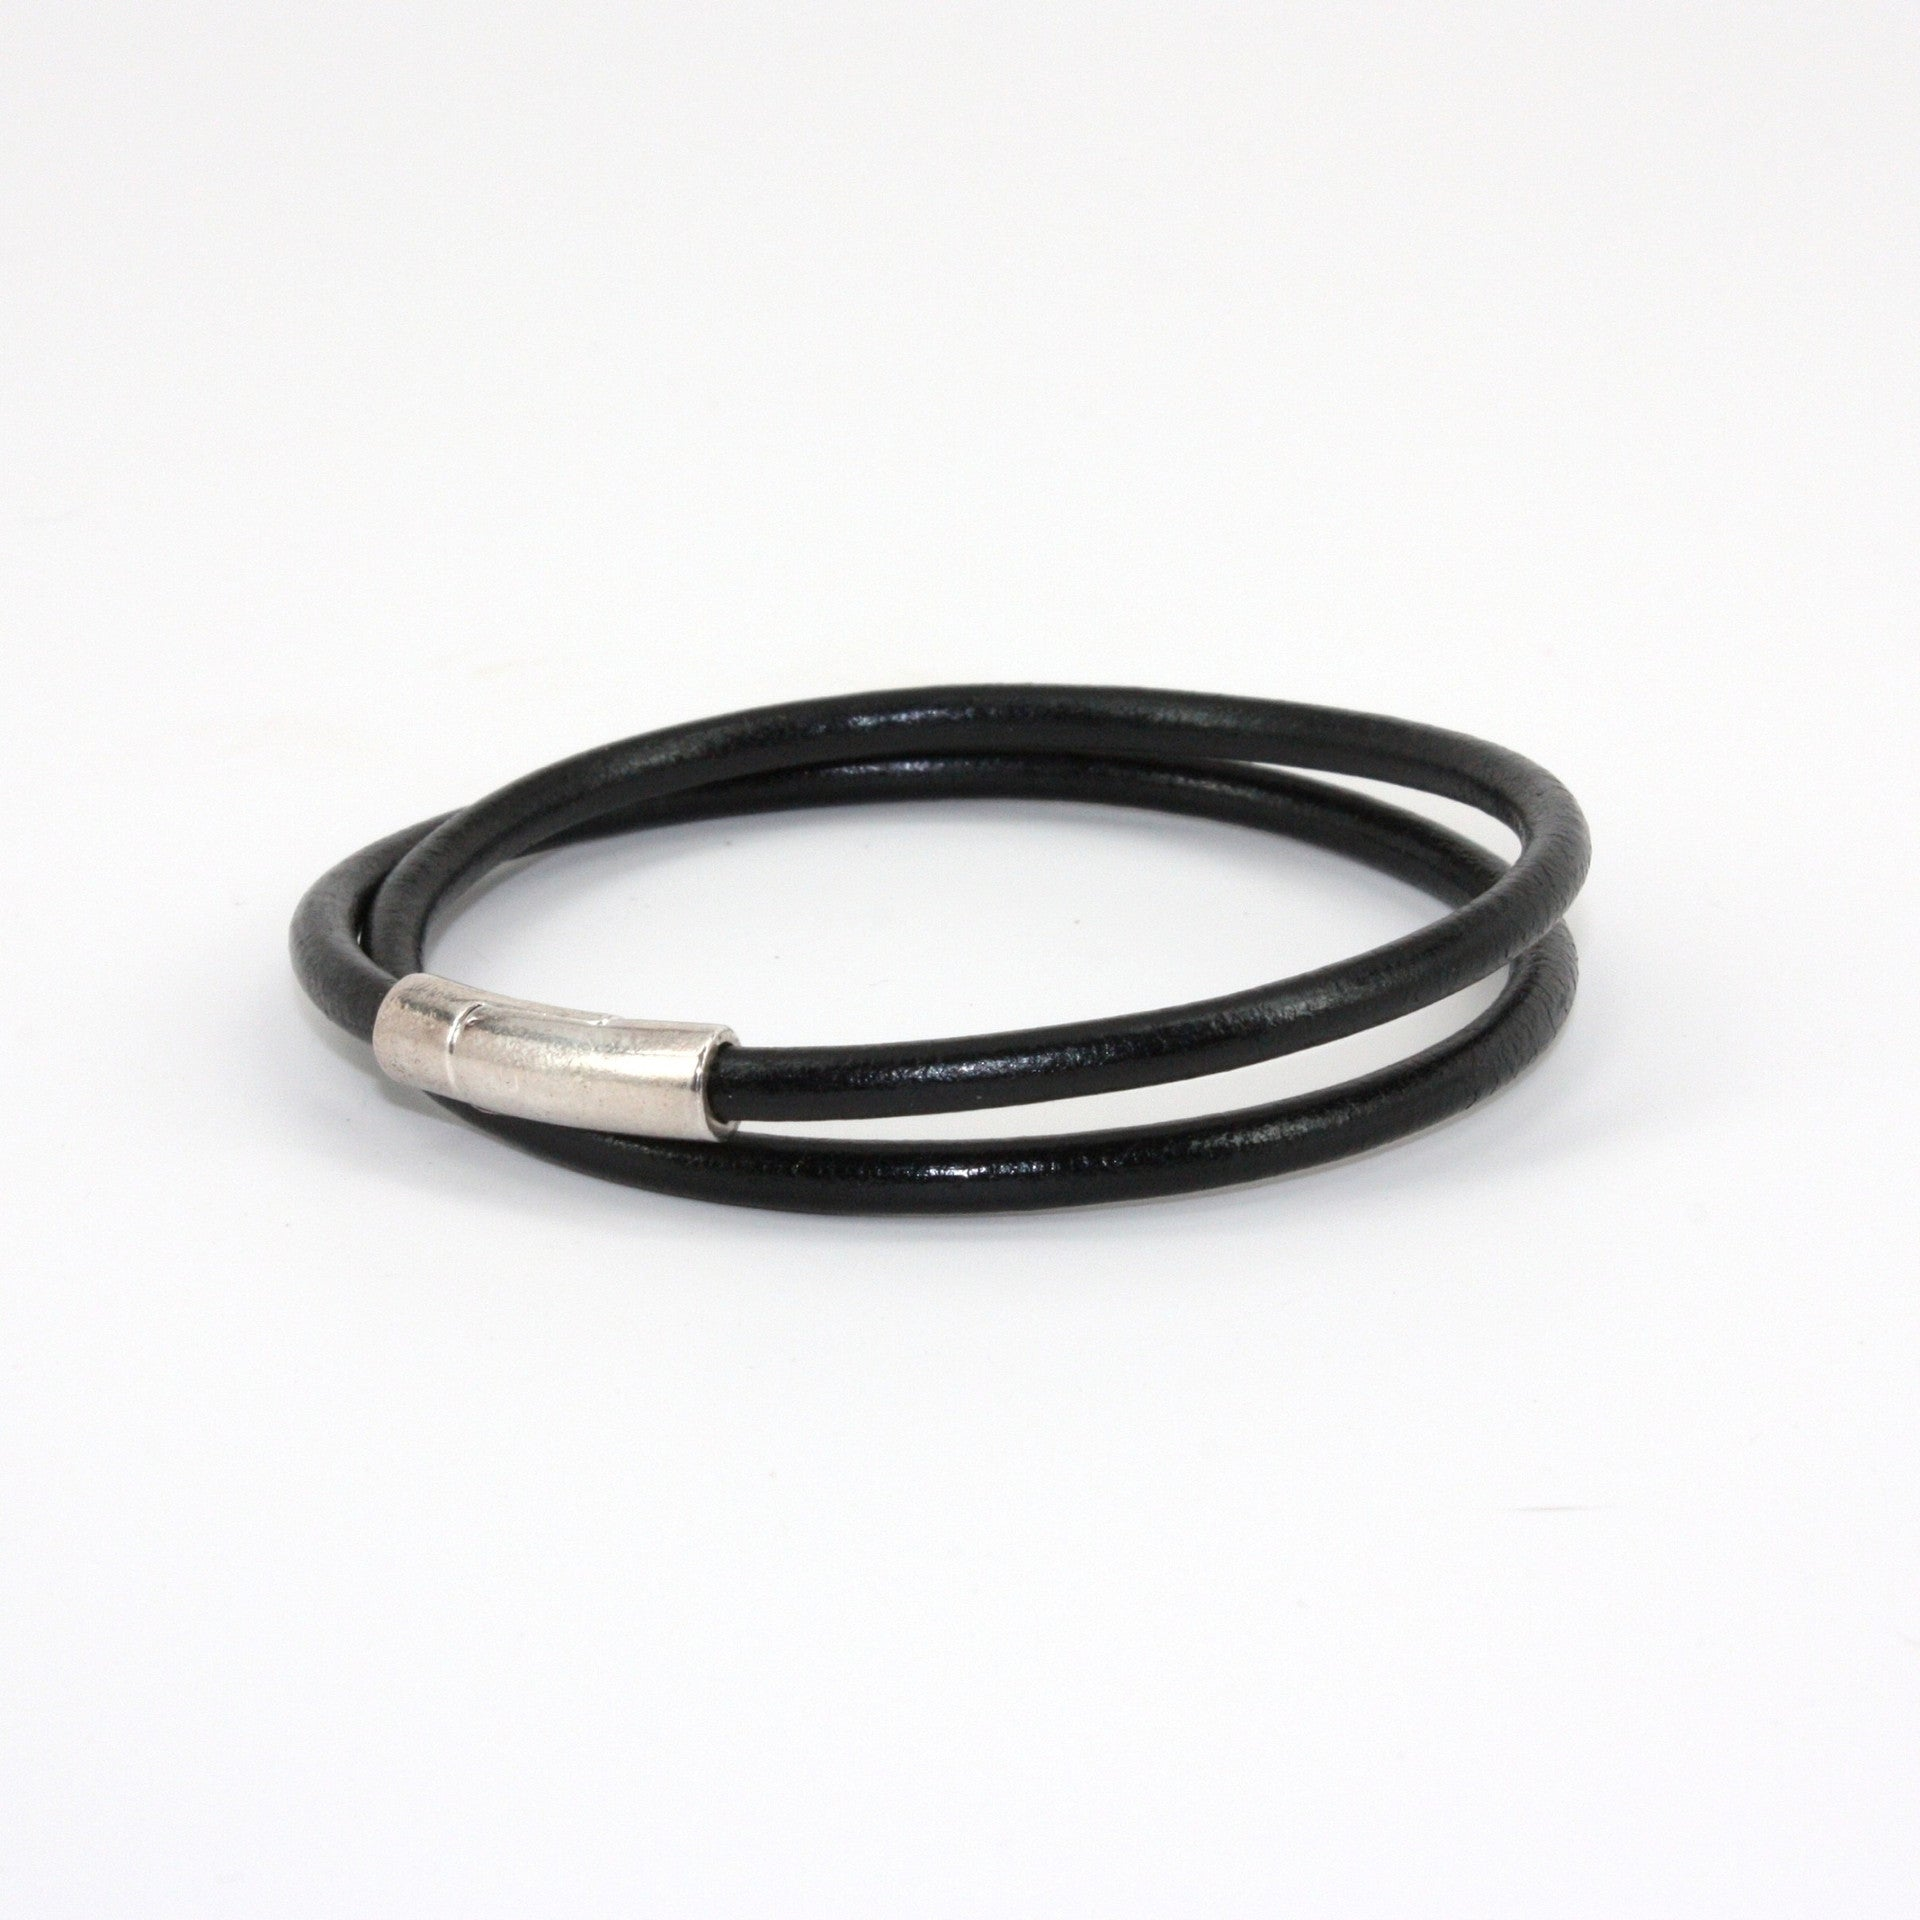 Torino Orbit Leather Tube Double Wrap Bracelet